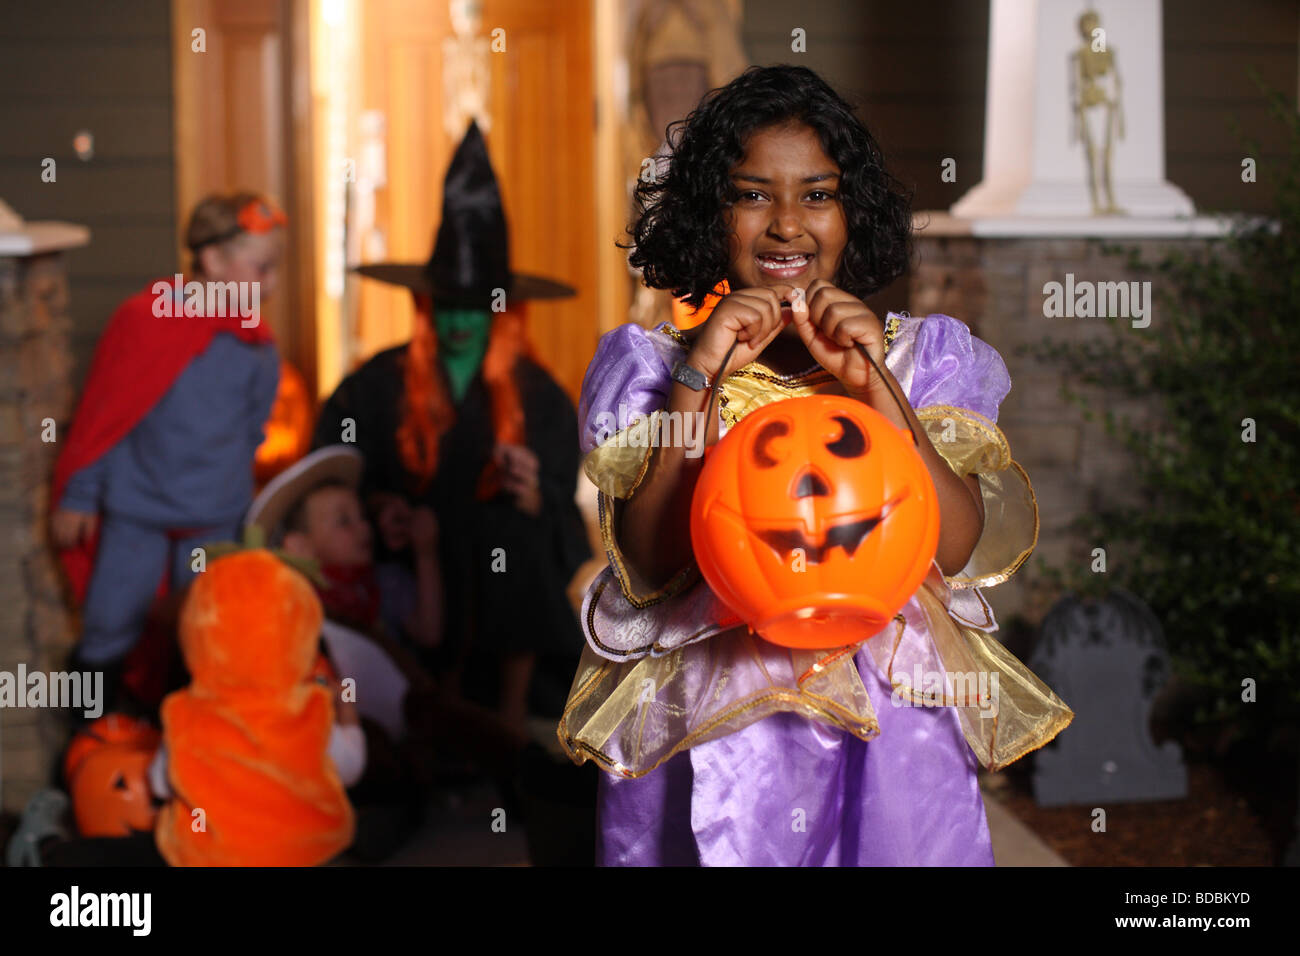 Girl in costume at Halloween party - Stock Image